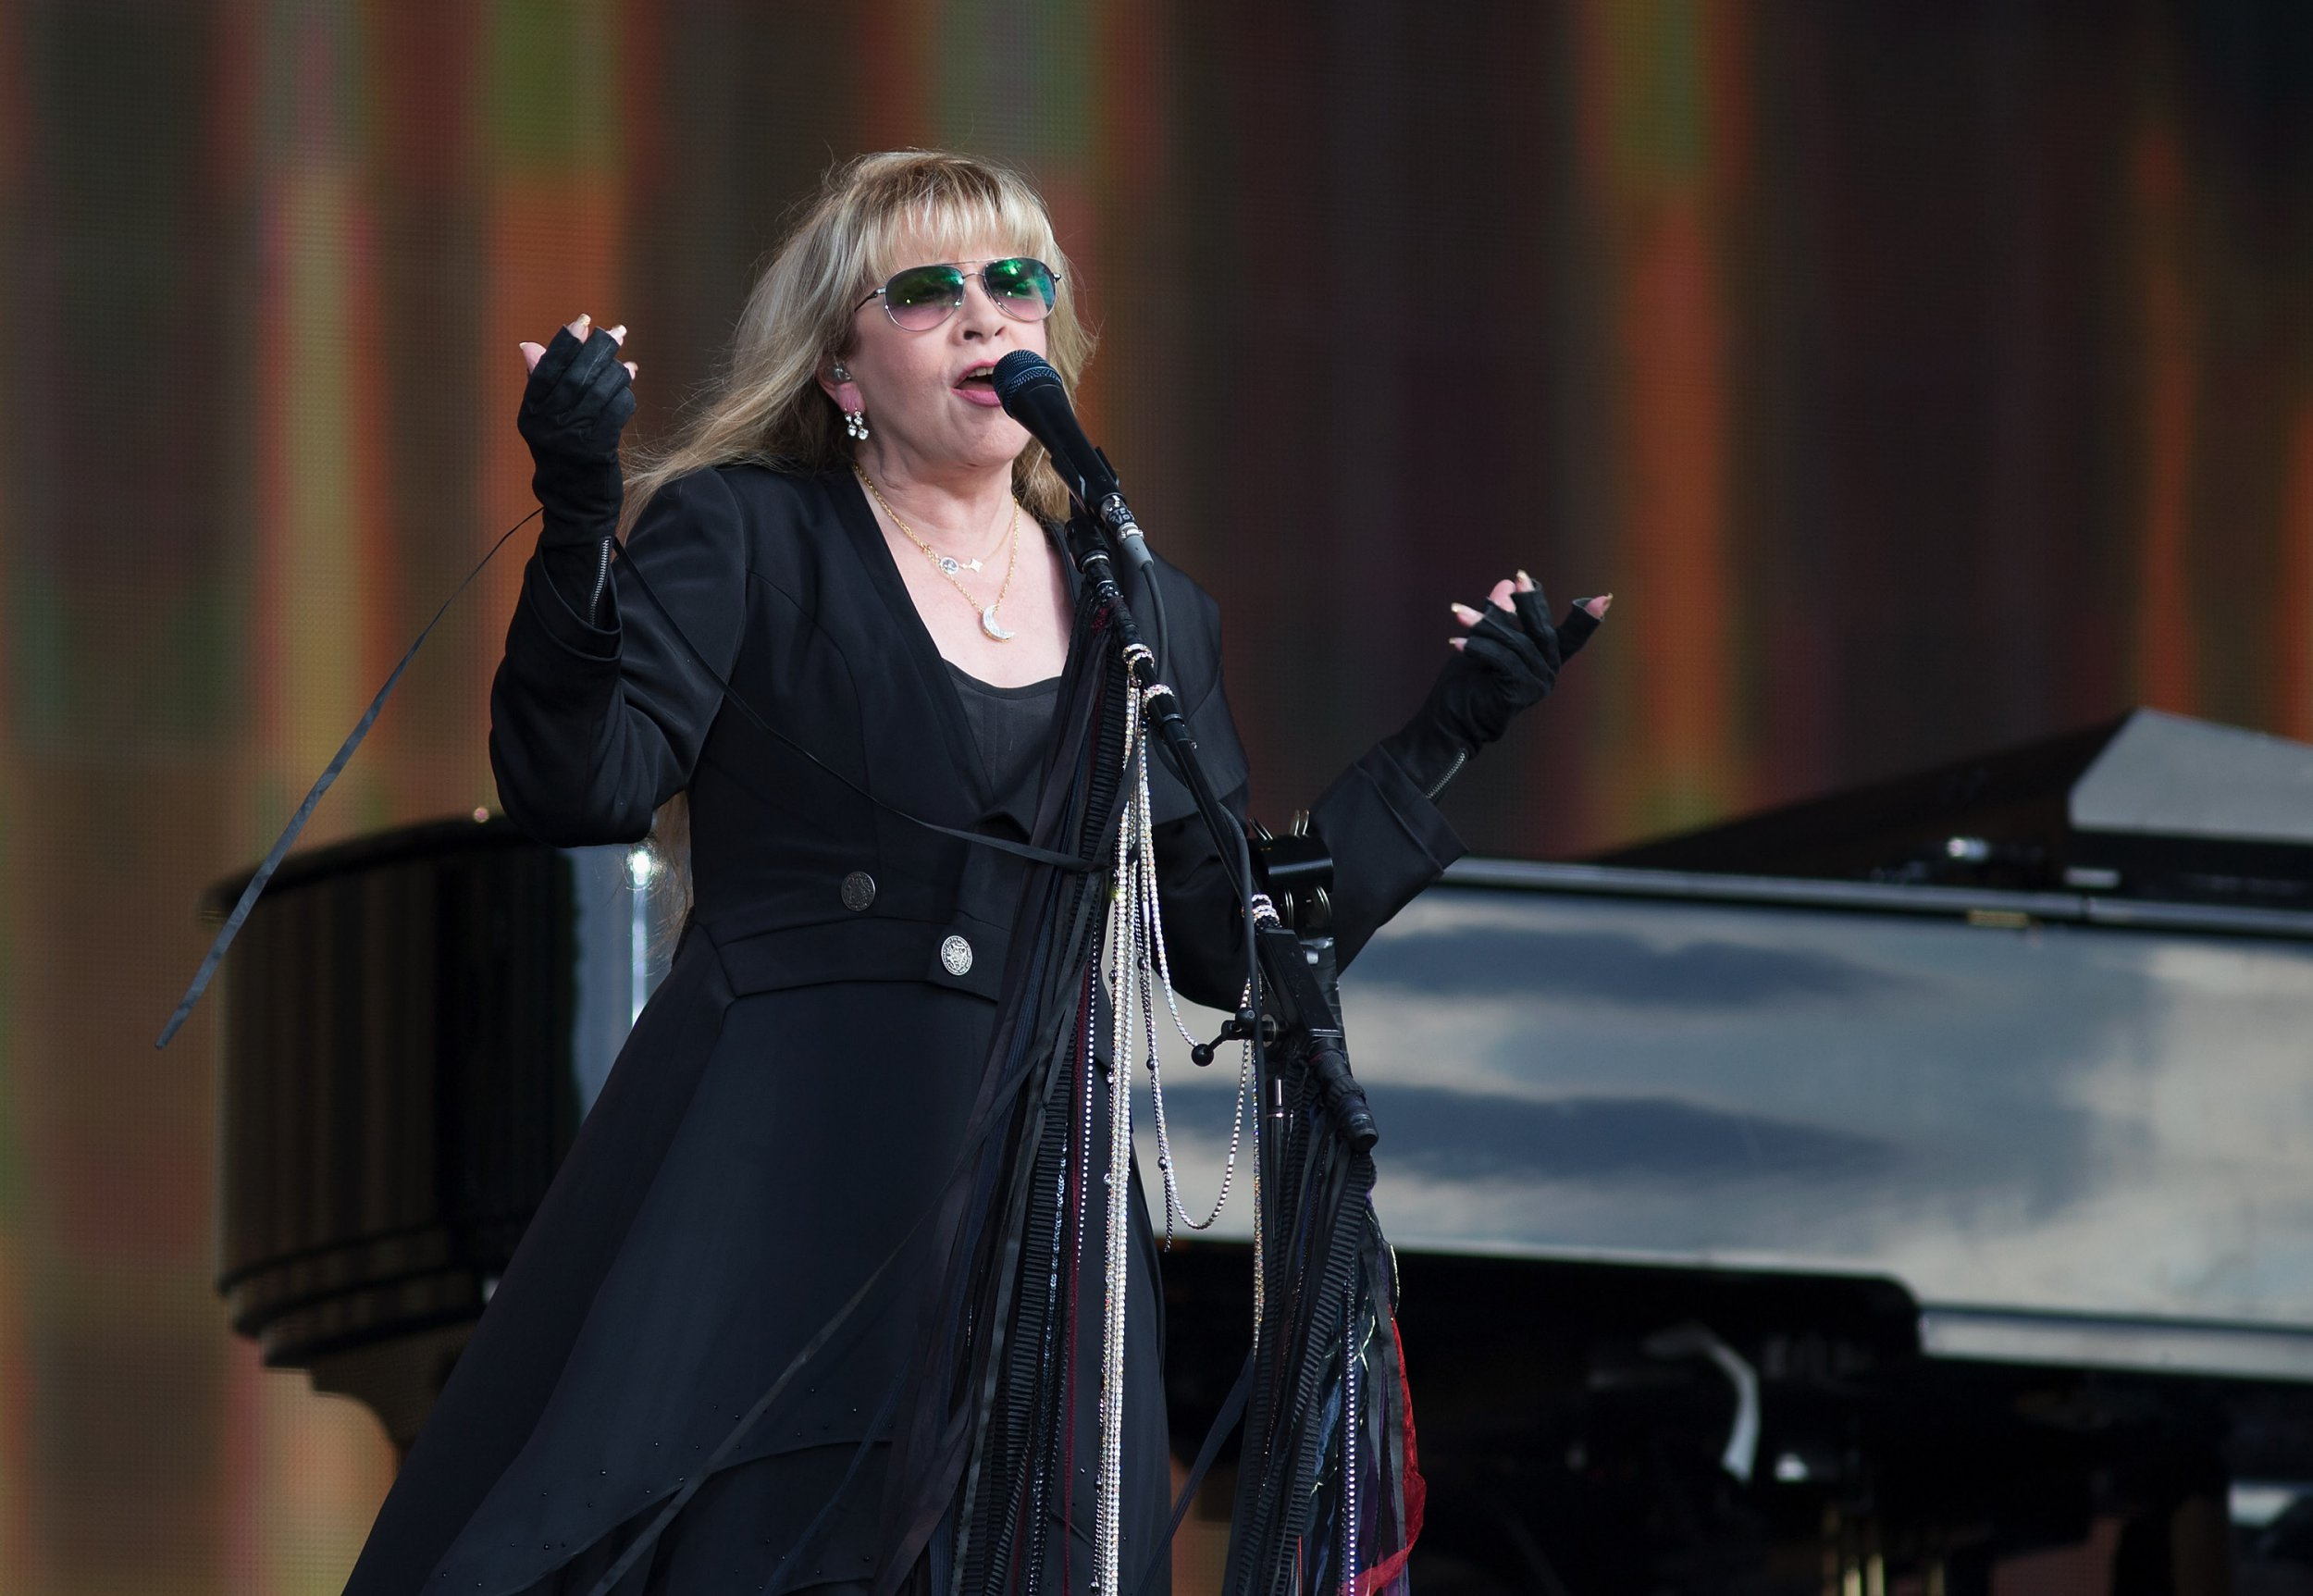 Stevie Nicks joined Tom Petty and the Heartbreakers for a surprise duet at BST Festival